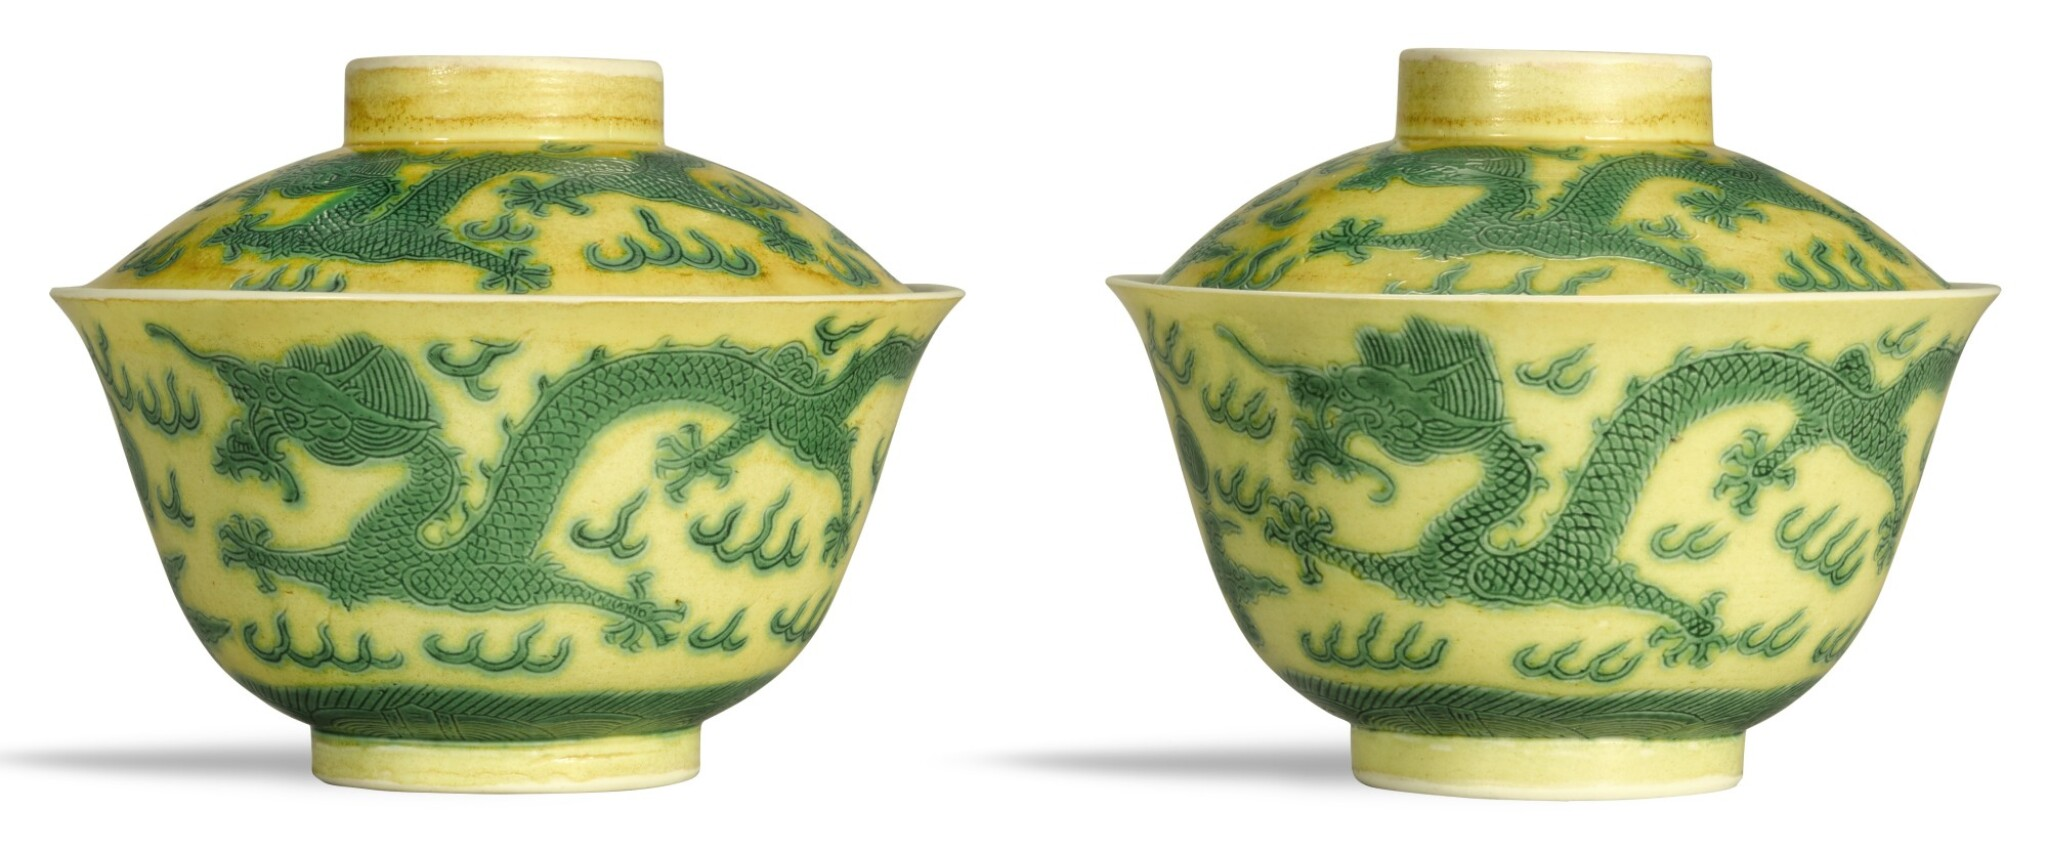 View full screen - View 1 of Lot 335. A PAIR OF YELLOW-GROUND GREEN-ENAMELLED 'DRAGON' BOWLS AND COVERS GUANGXU MARKS AND PERIOD   清光緒 黃地綠彩趕珠游龍紋蓋盌一對 《大清光緒年製》款.